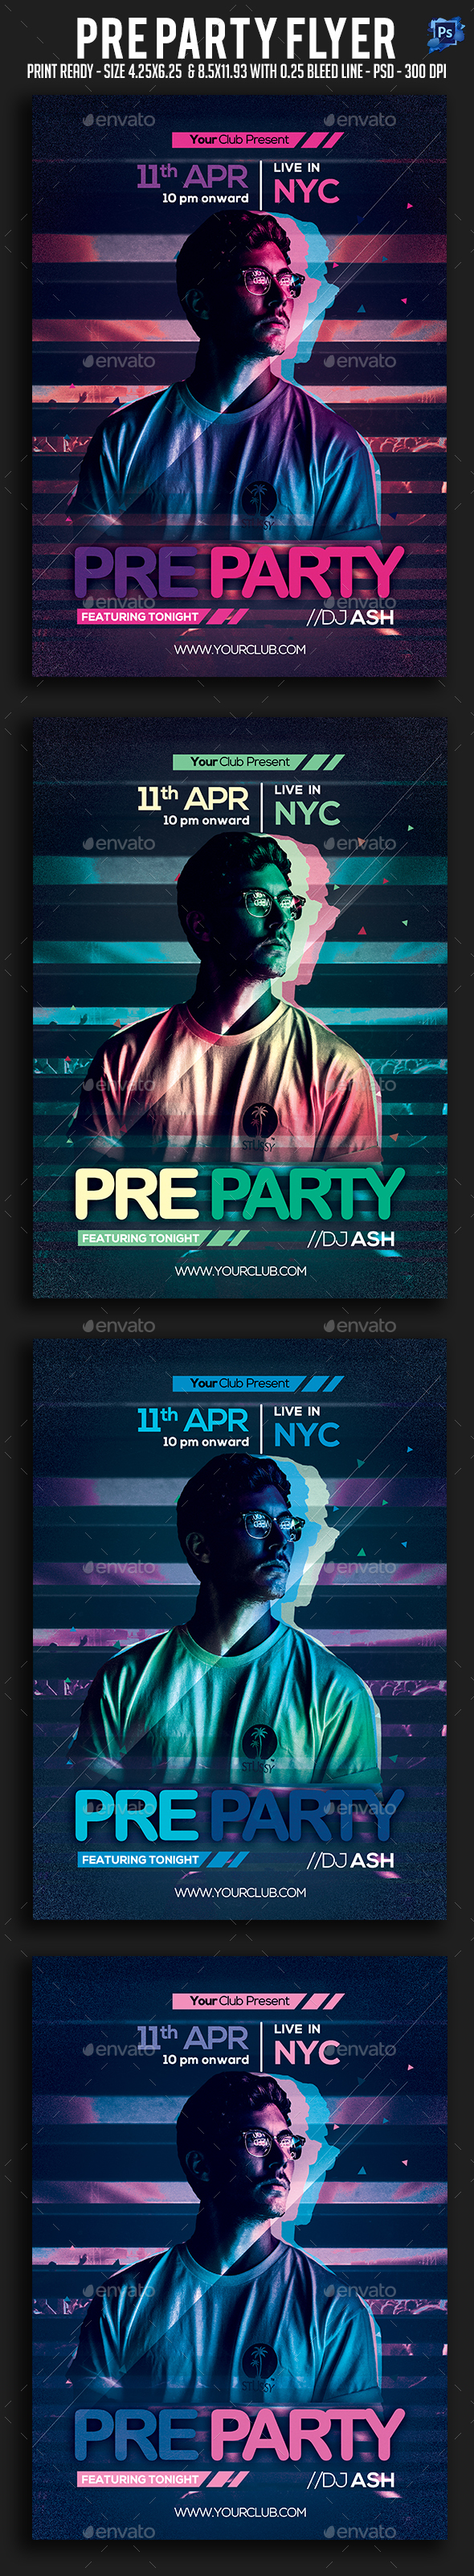 Pre Party Flyer - Clubs & Parties Events